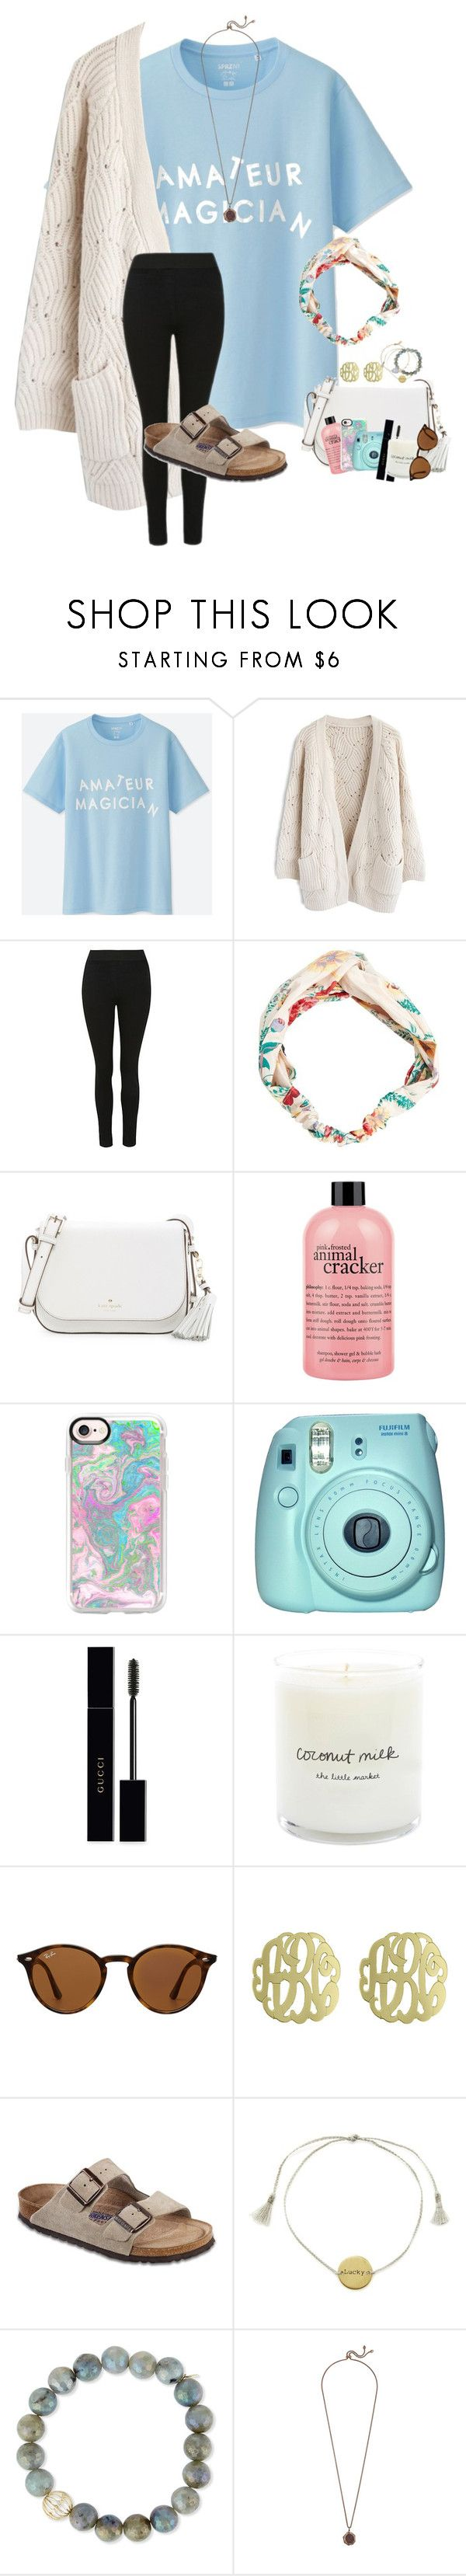 """""""~yea i meant it~"""" by taylortinsley ❤ liked on Polyvore featuring Uniqlo, Chicwish, MANGO, Kate Spade, philosophy, Casetify, Fuji, Gucci, Ray-Ban and Initial Reaction"""